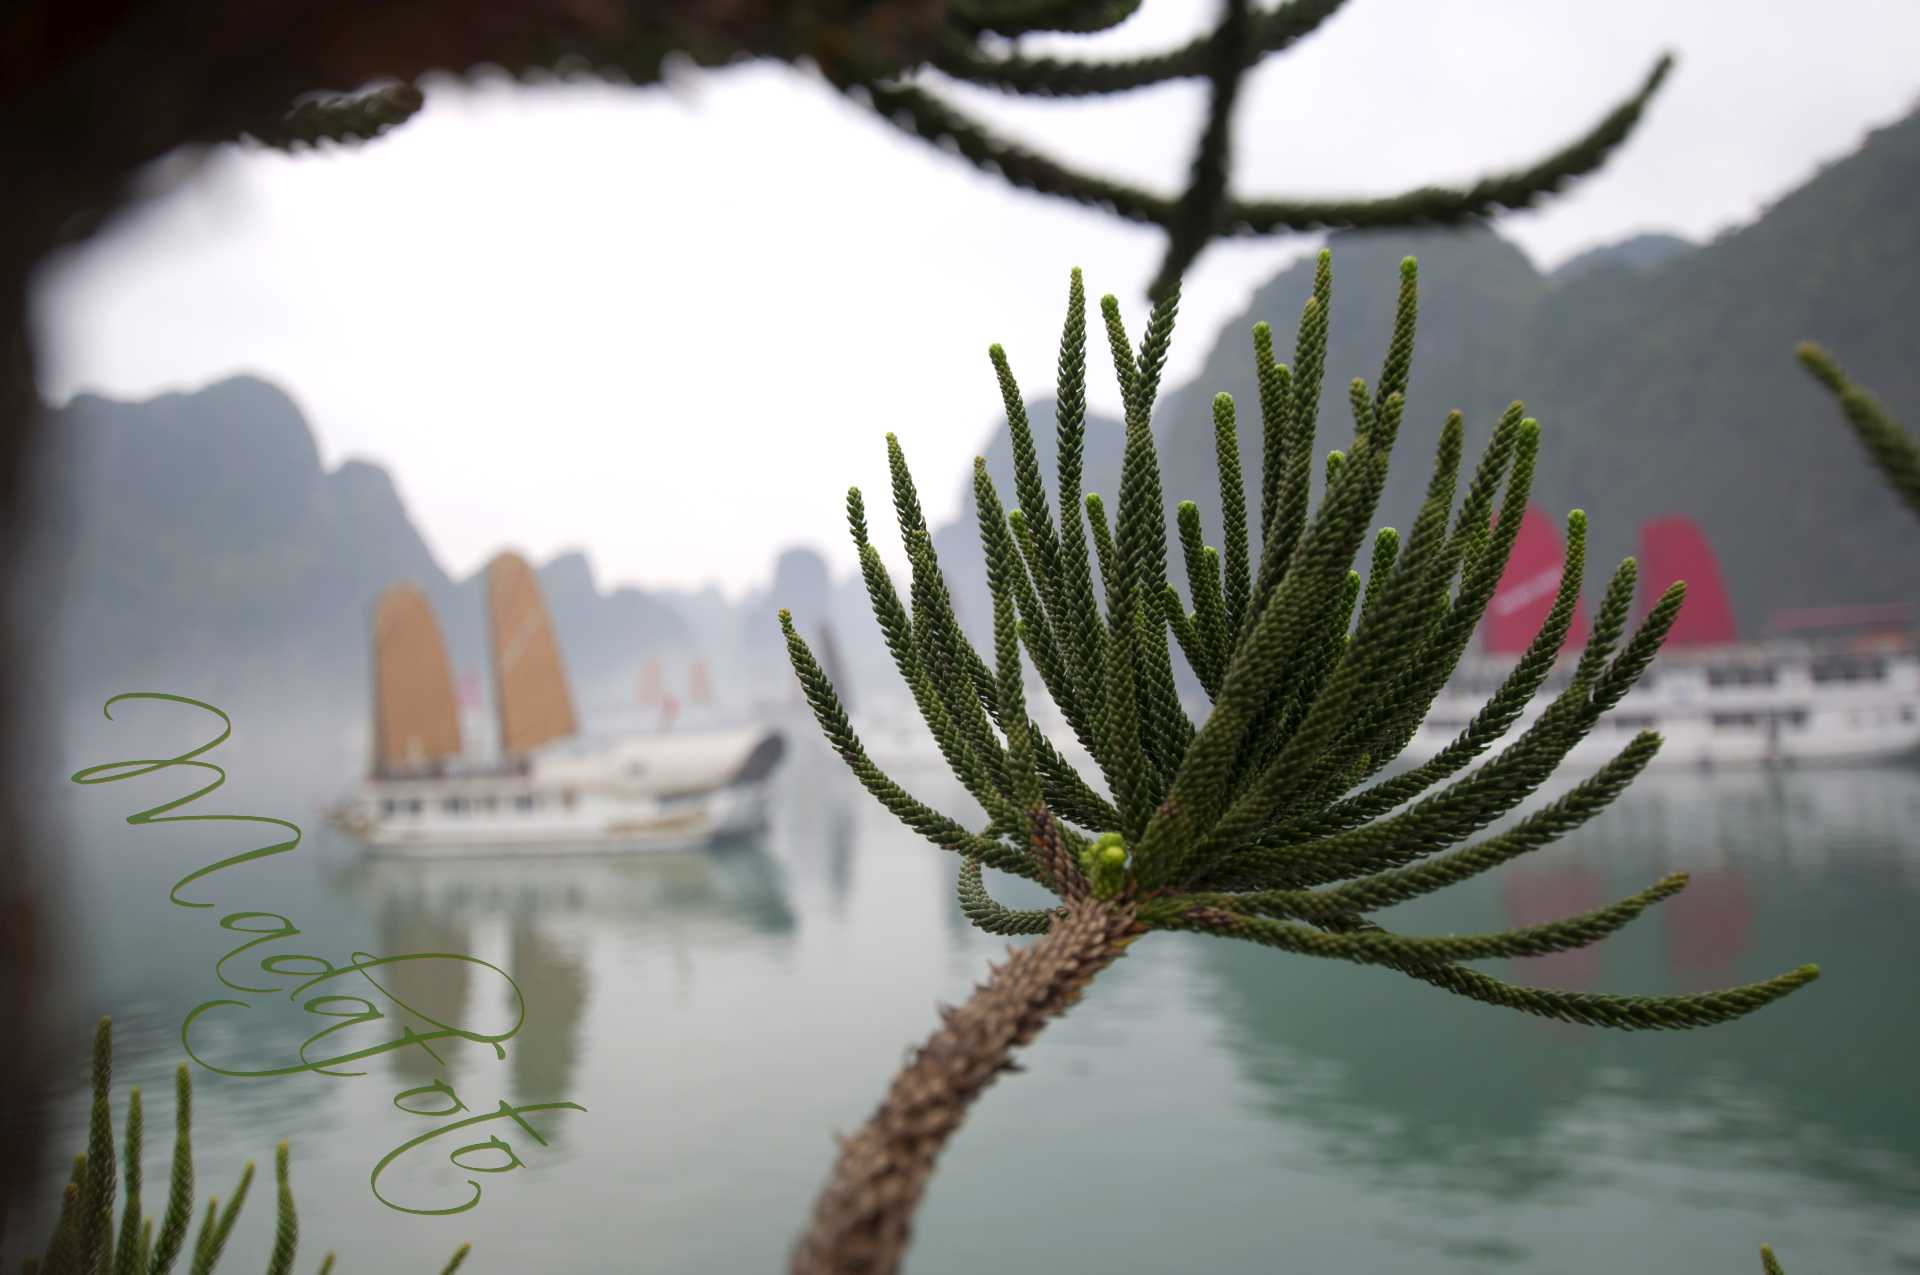 (1) Vietnam – Ha Long Bay